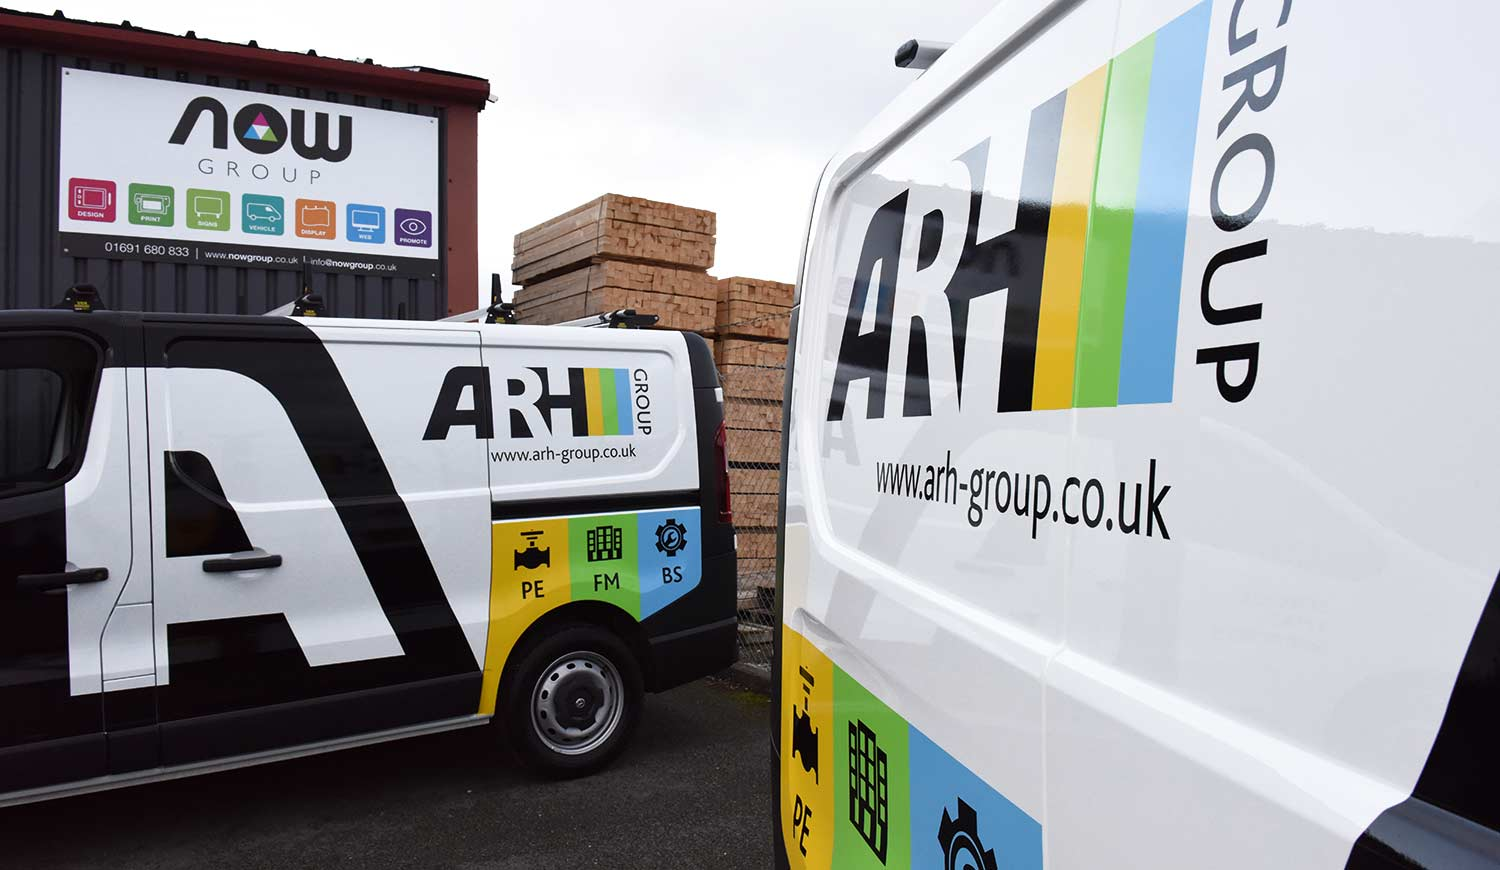 Fleet Graphics in Oswestry - Now Group